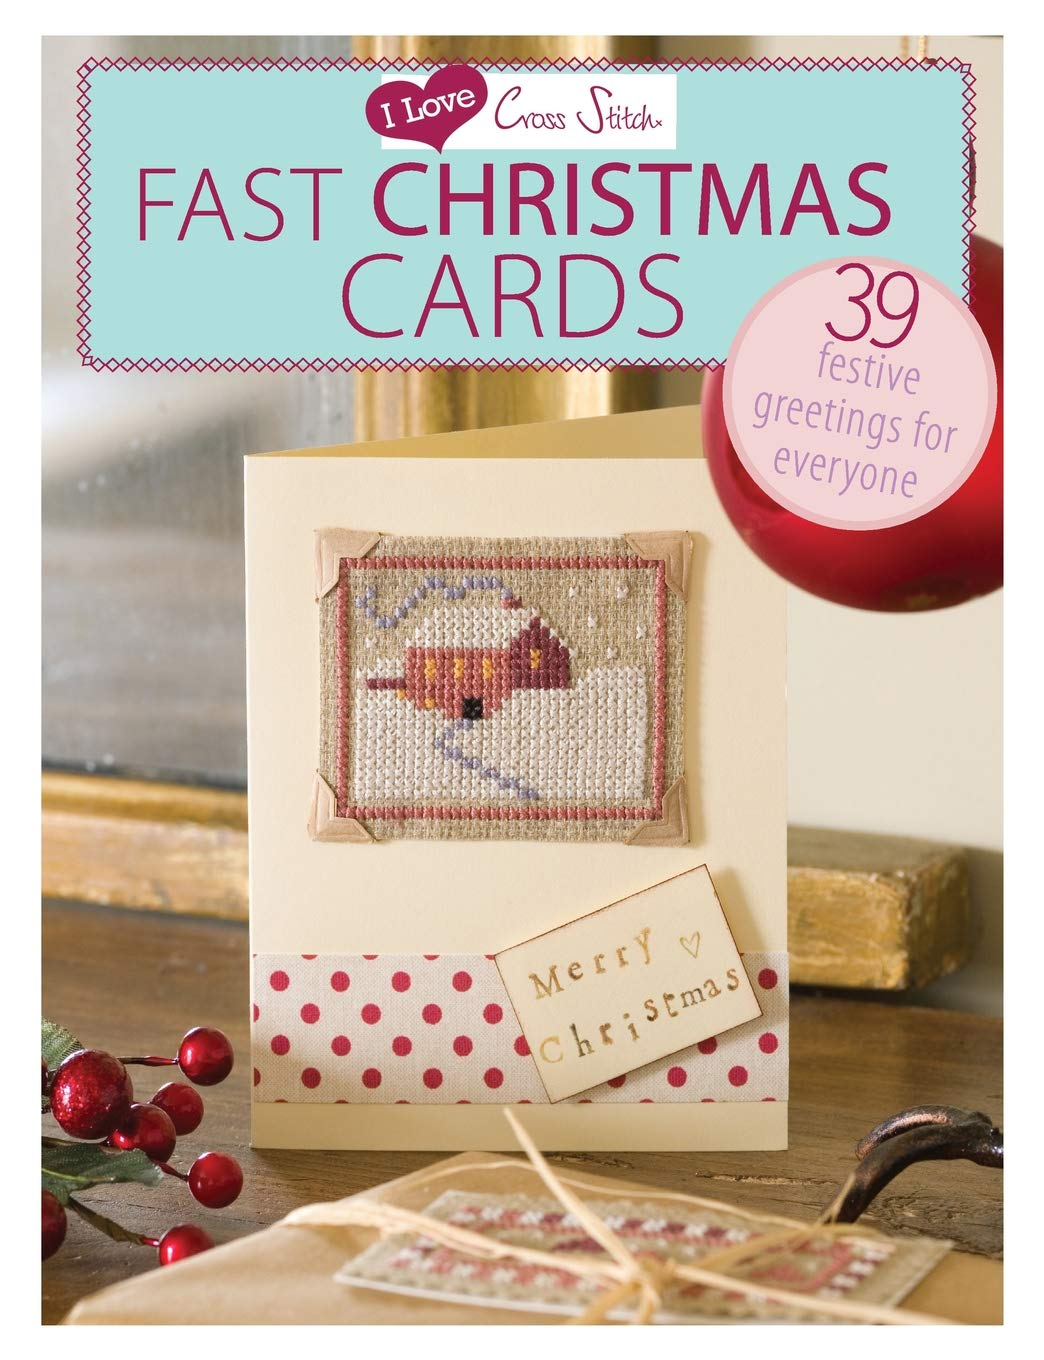 I Love Cross Stitch Fast Christmas Cards: 39 Festive Greetings for ...